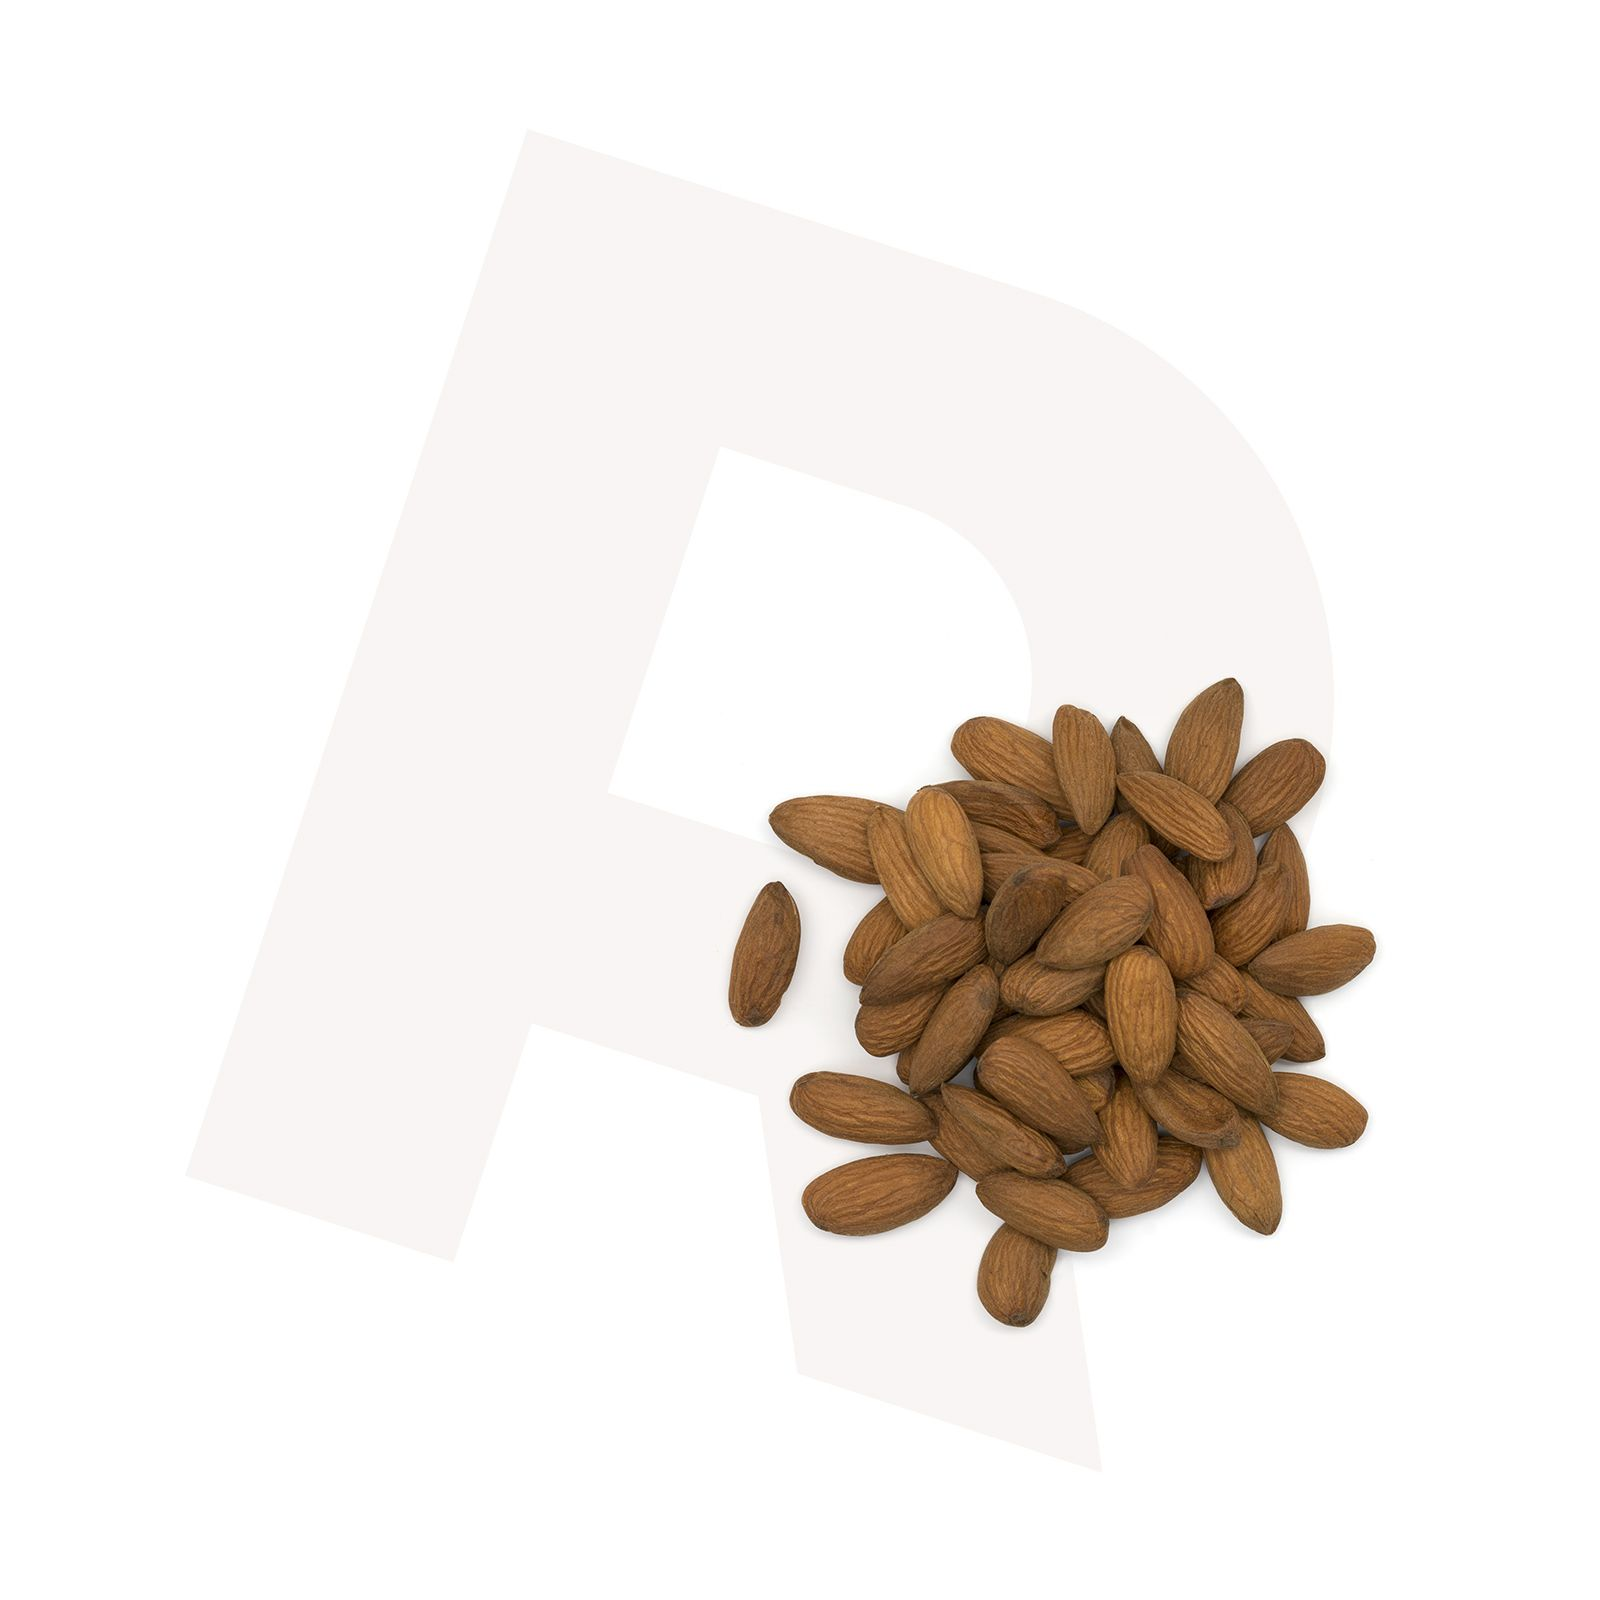 Almonds_Brown-almonds